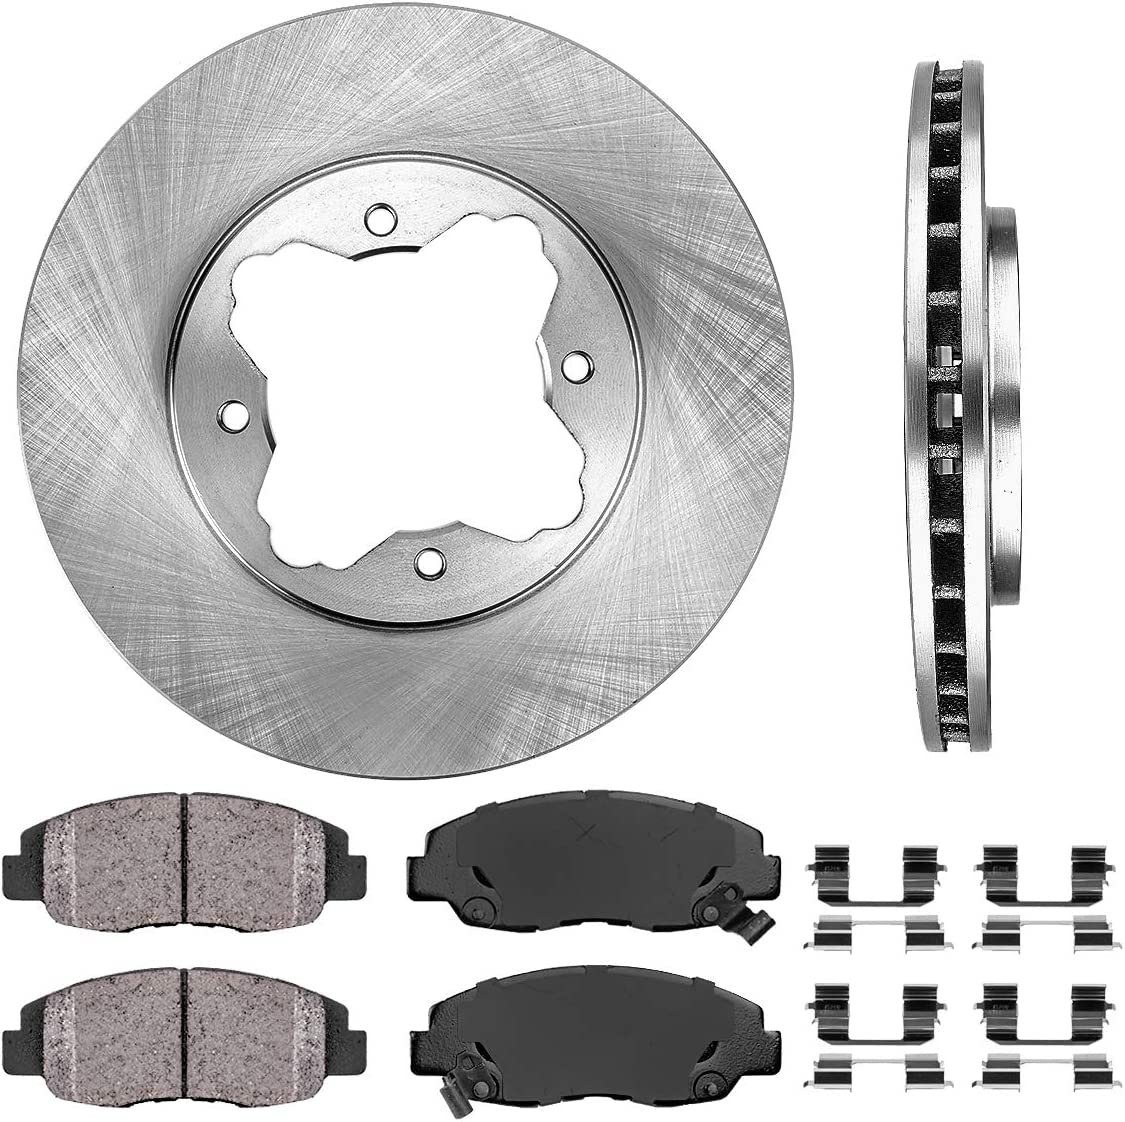 1990-1997 Honda Accord Brakes Disc Rotor Rotors Front